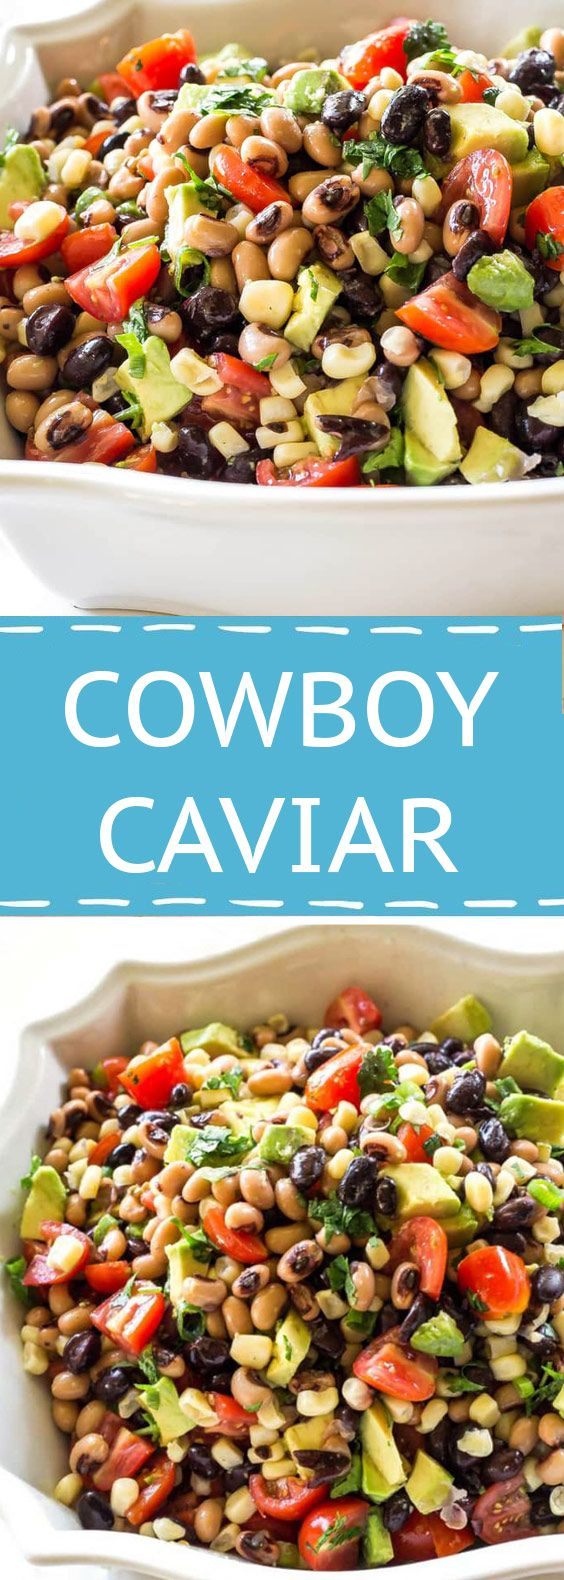 Cowboy Caviar Foodrecipes In 2019 Cowboy Caviar